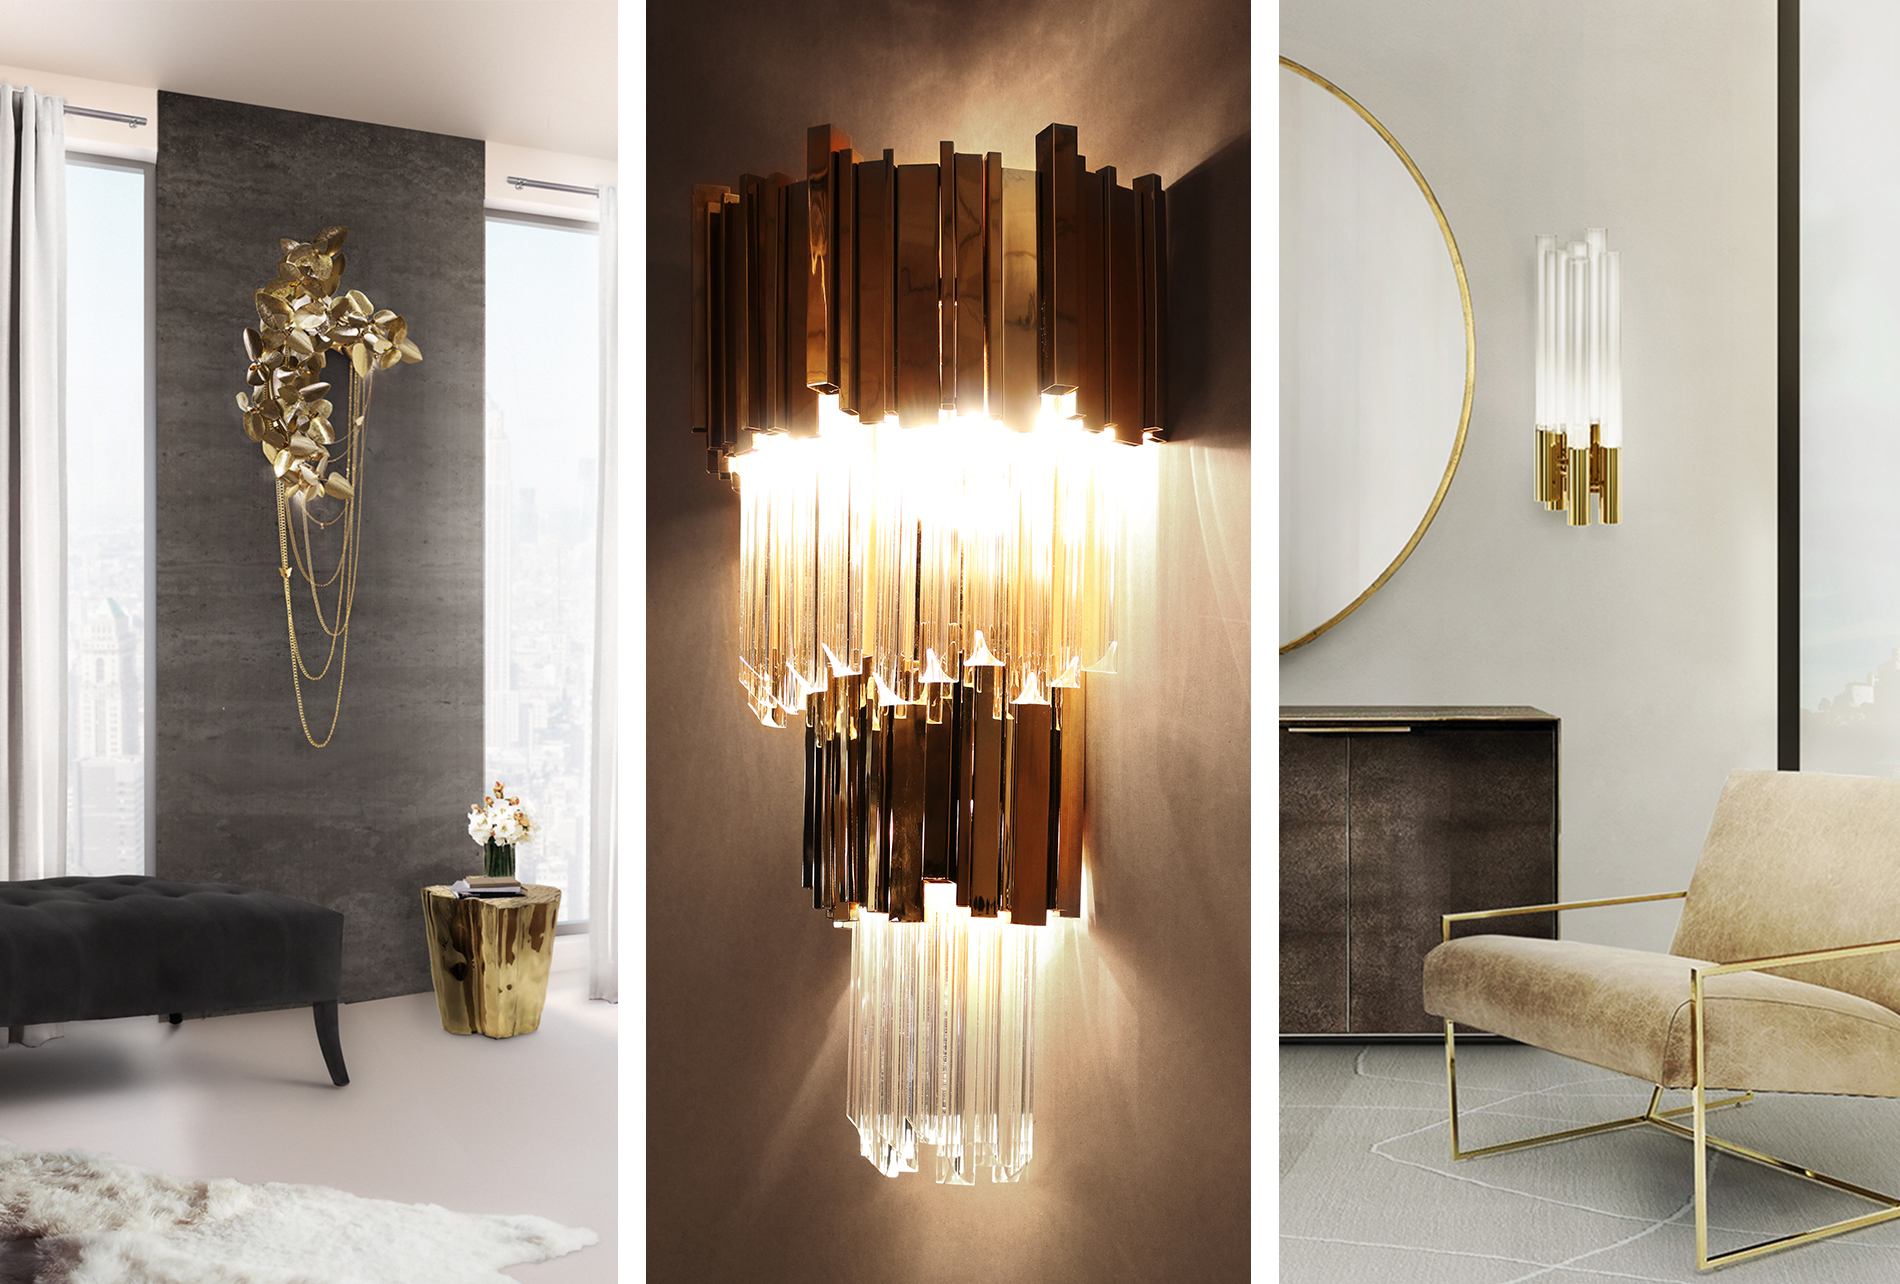 Luxury design: wall lights by Luxxu to create a glamorous decor new collection Find the new collection of Luxxu Luxxu Wall Lamps new collection Find the new collection of Luxxu Luxxu Wall Lamps